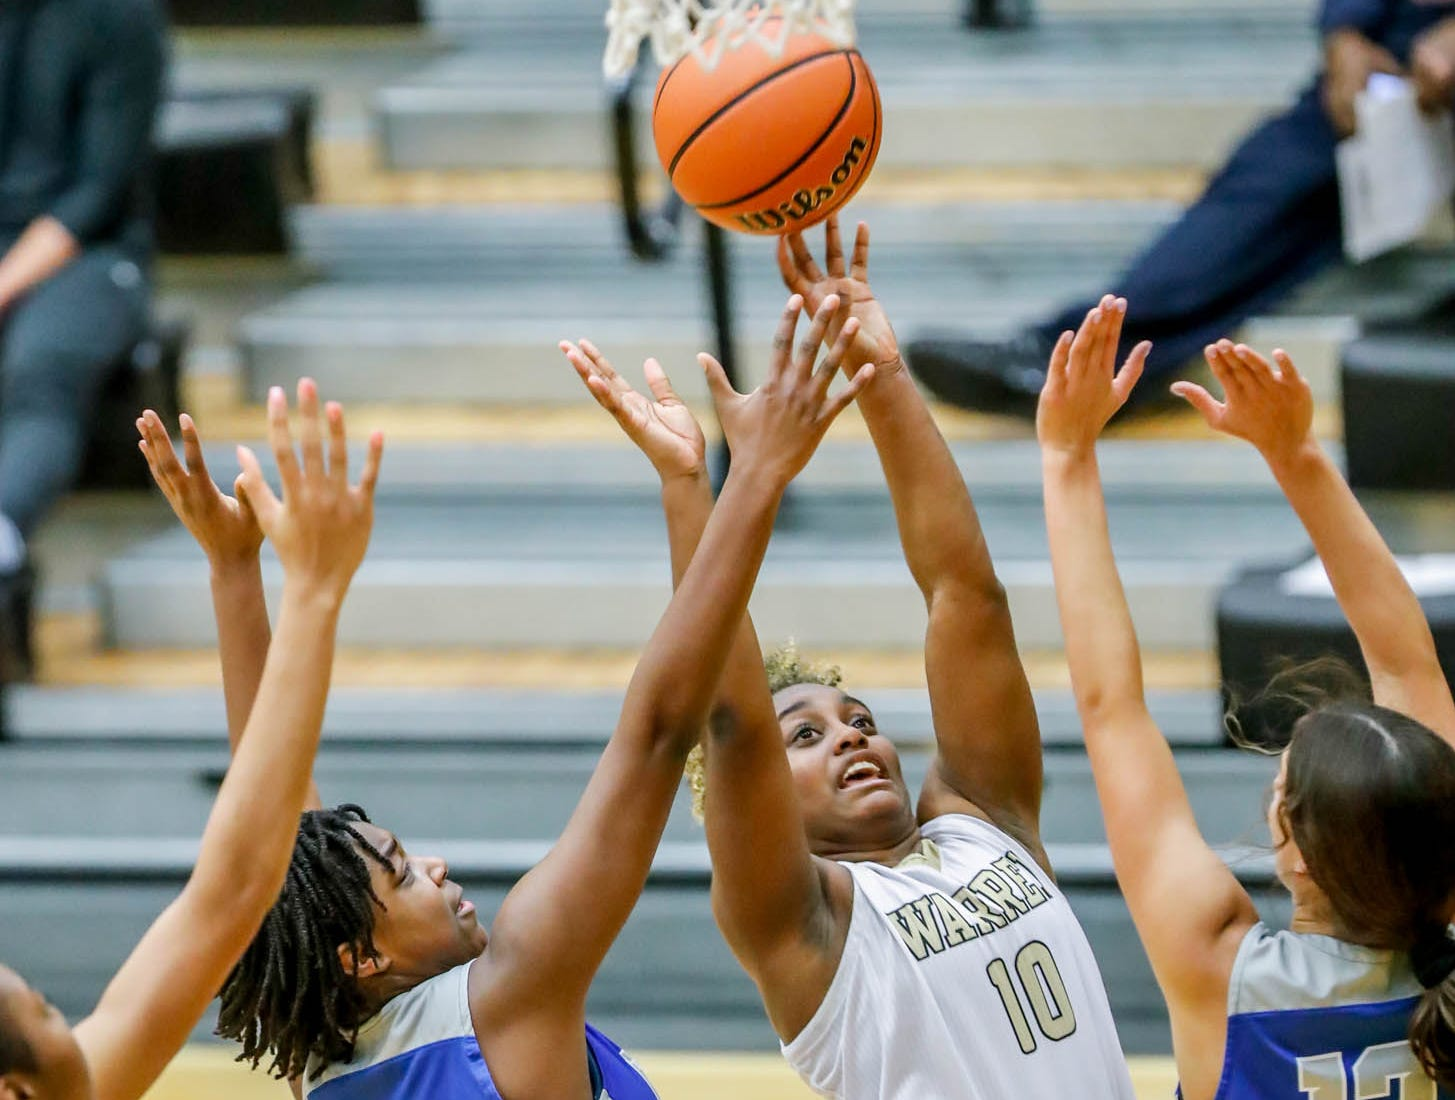 Players Hamilton South Eastern's Malea Jackson (3), Warren Central High School's Shaila Beeler (10), and Hamilton South Eastern's Jackie Maulucci (12), jump for a rebound during a game between Hamilton Southeastern High School and Warren Central High School, held at Warren on Thursday, Jan. 3, 2019.